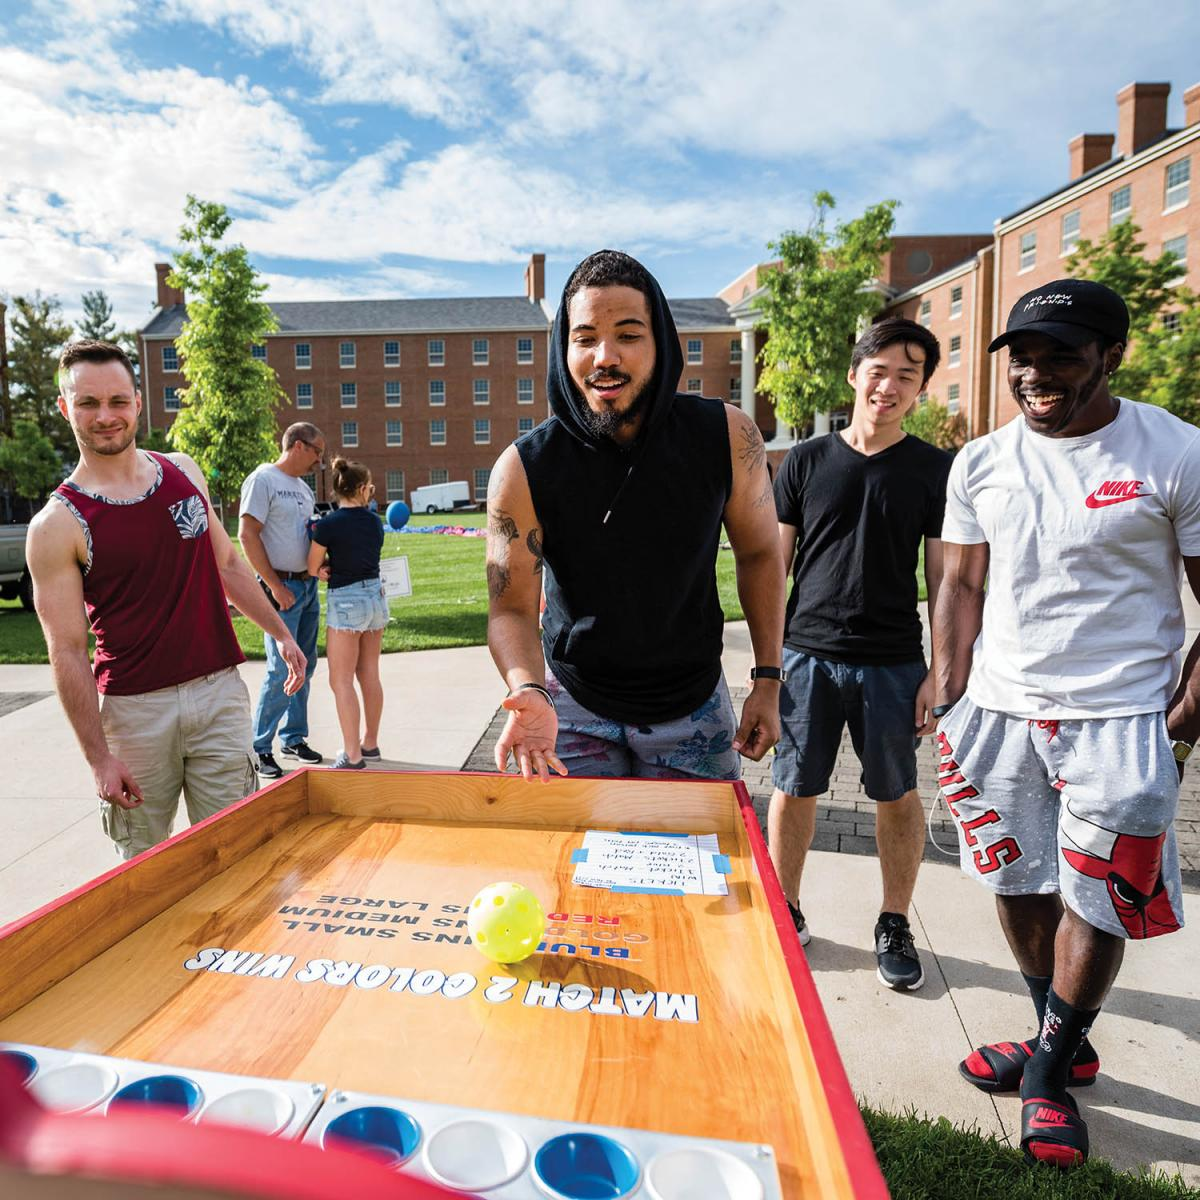 Students were excited to see the return of Doo Dah Day this spring. Trey King '17 competes in one of the many games set up for students near Harrison Hall.